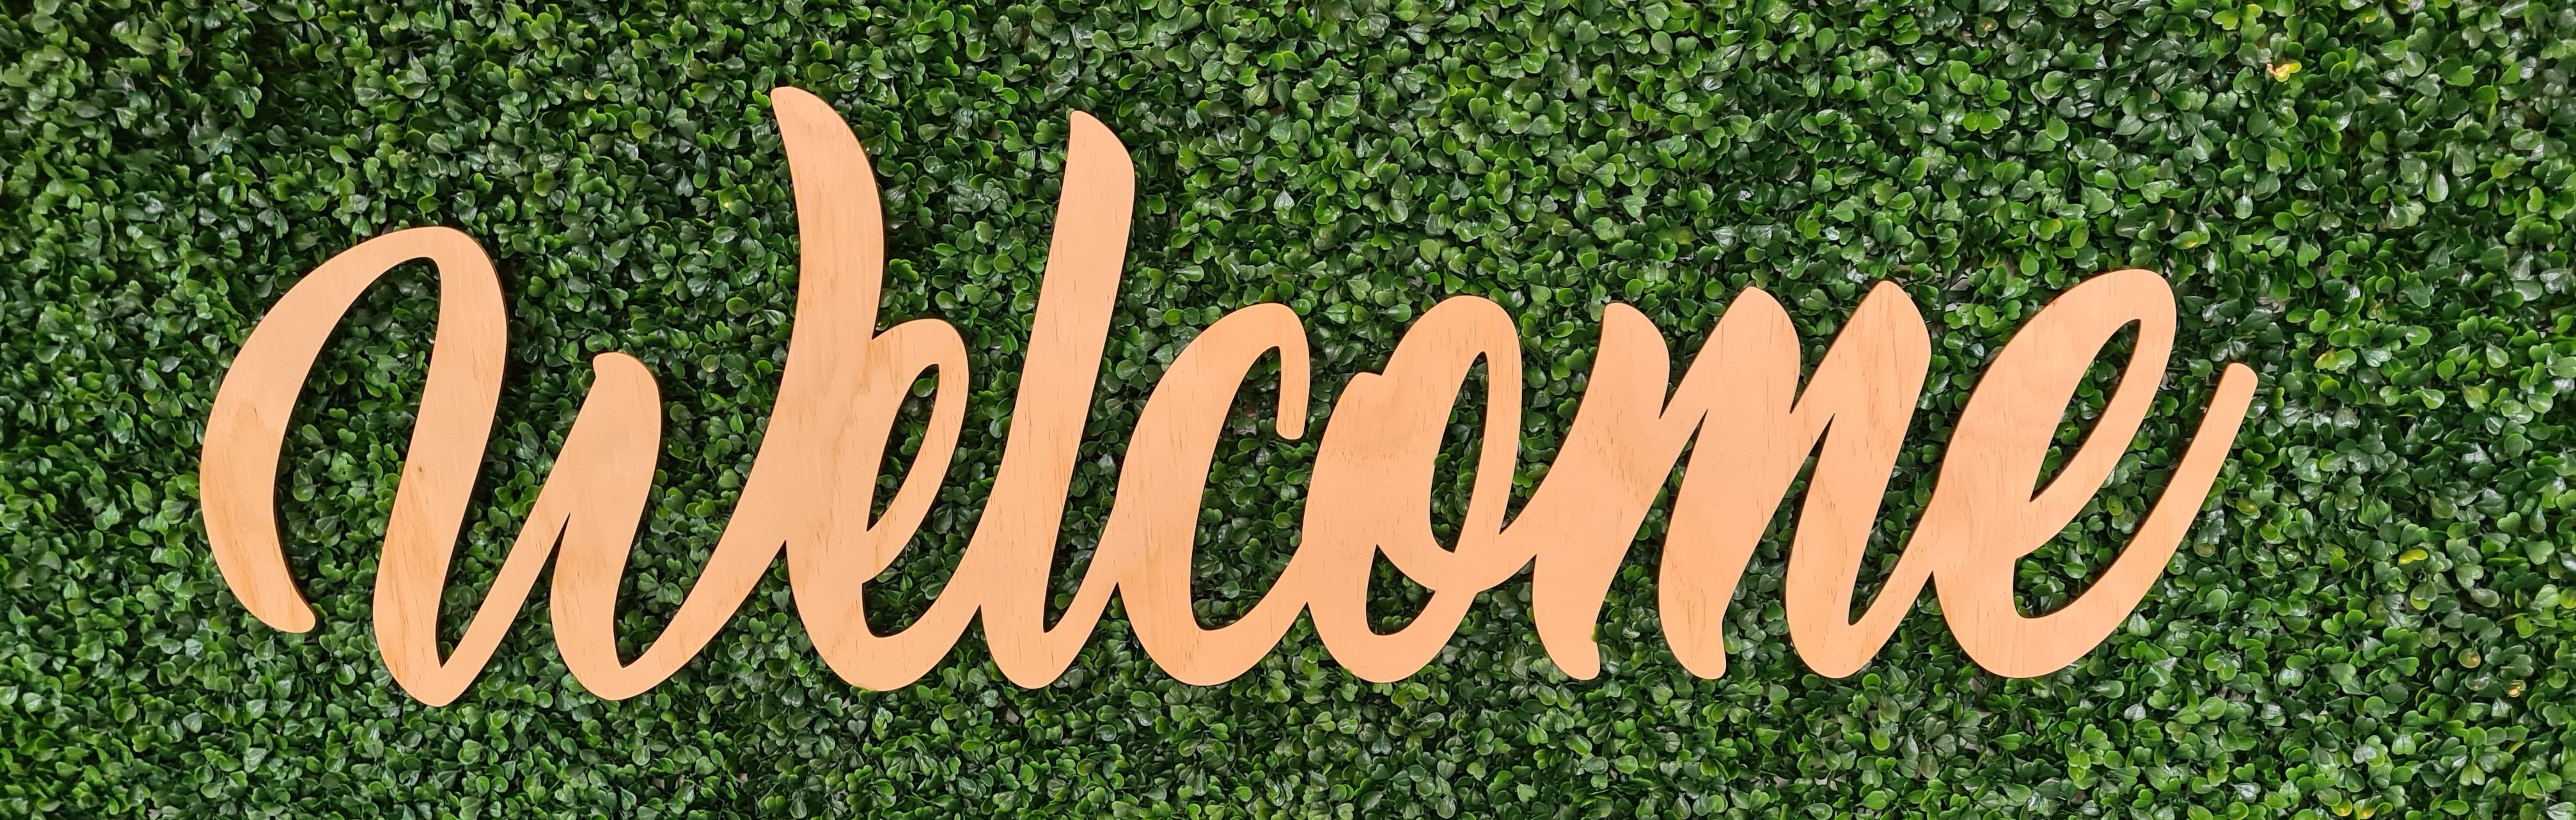 Welcome sign on green grass